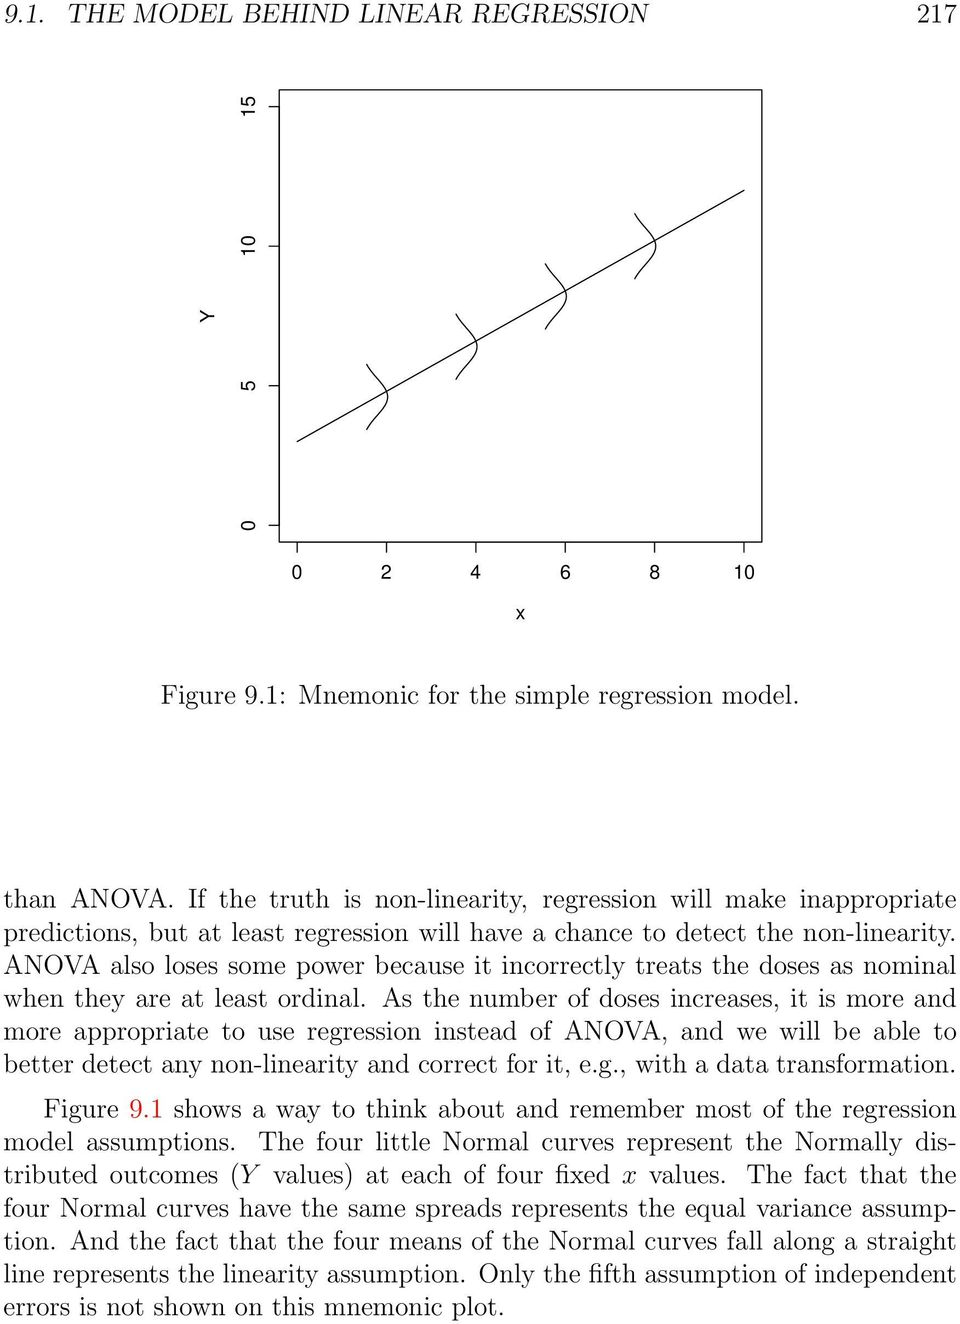 ANOVA also loses some power because it incorrectly treats the doses as nominal when they are at least ordinal.